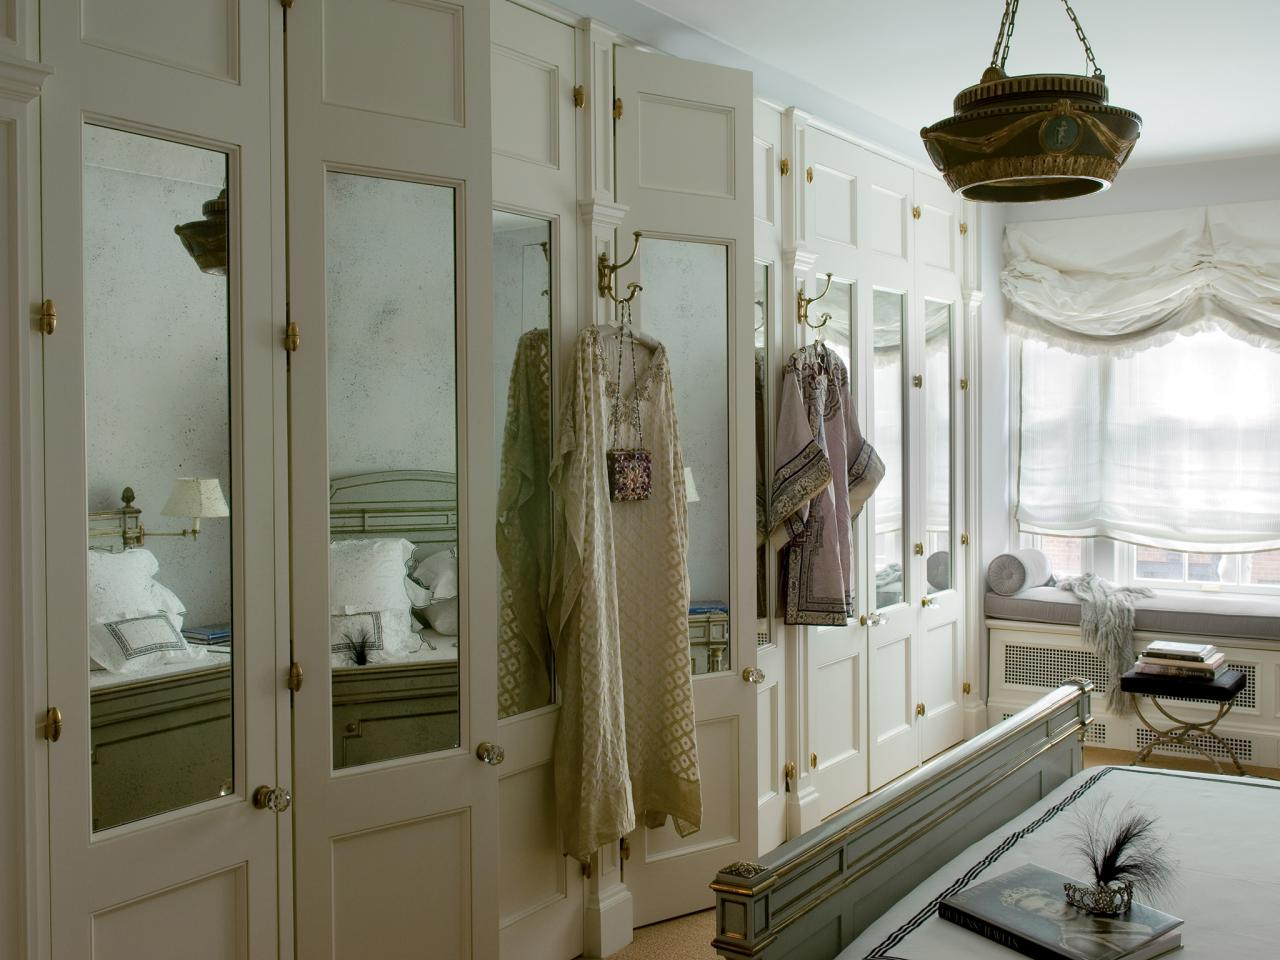 CI-Farrow-And-Ball-The-Art-of-Color-pg110_bedroom-mirrored-closet-doors_4x3_jpg_rend_hgtvcom_1280_960.jpg